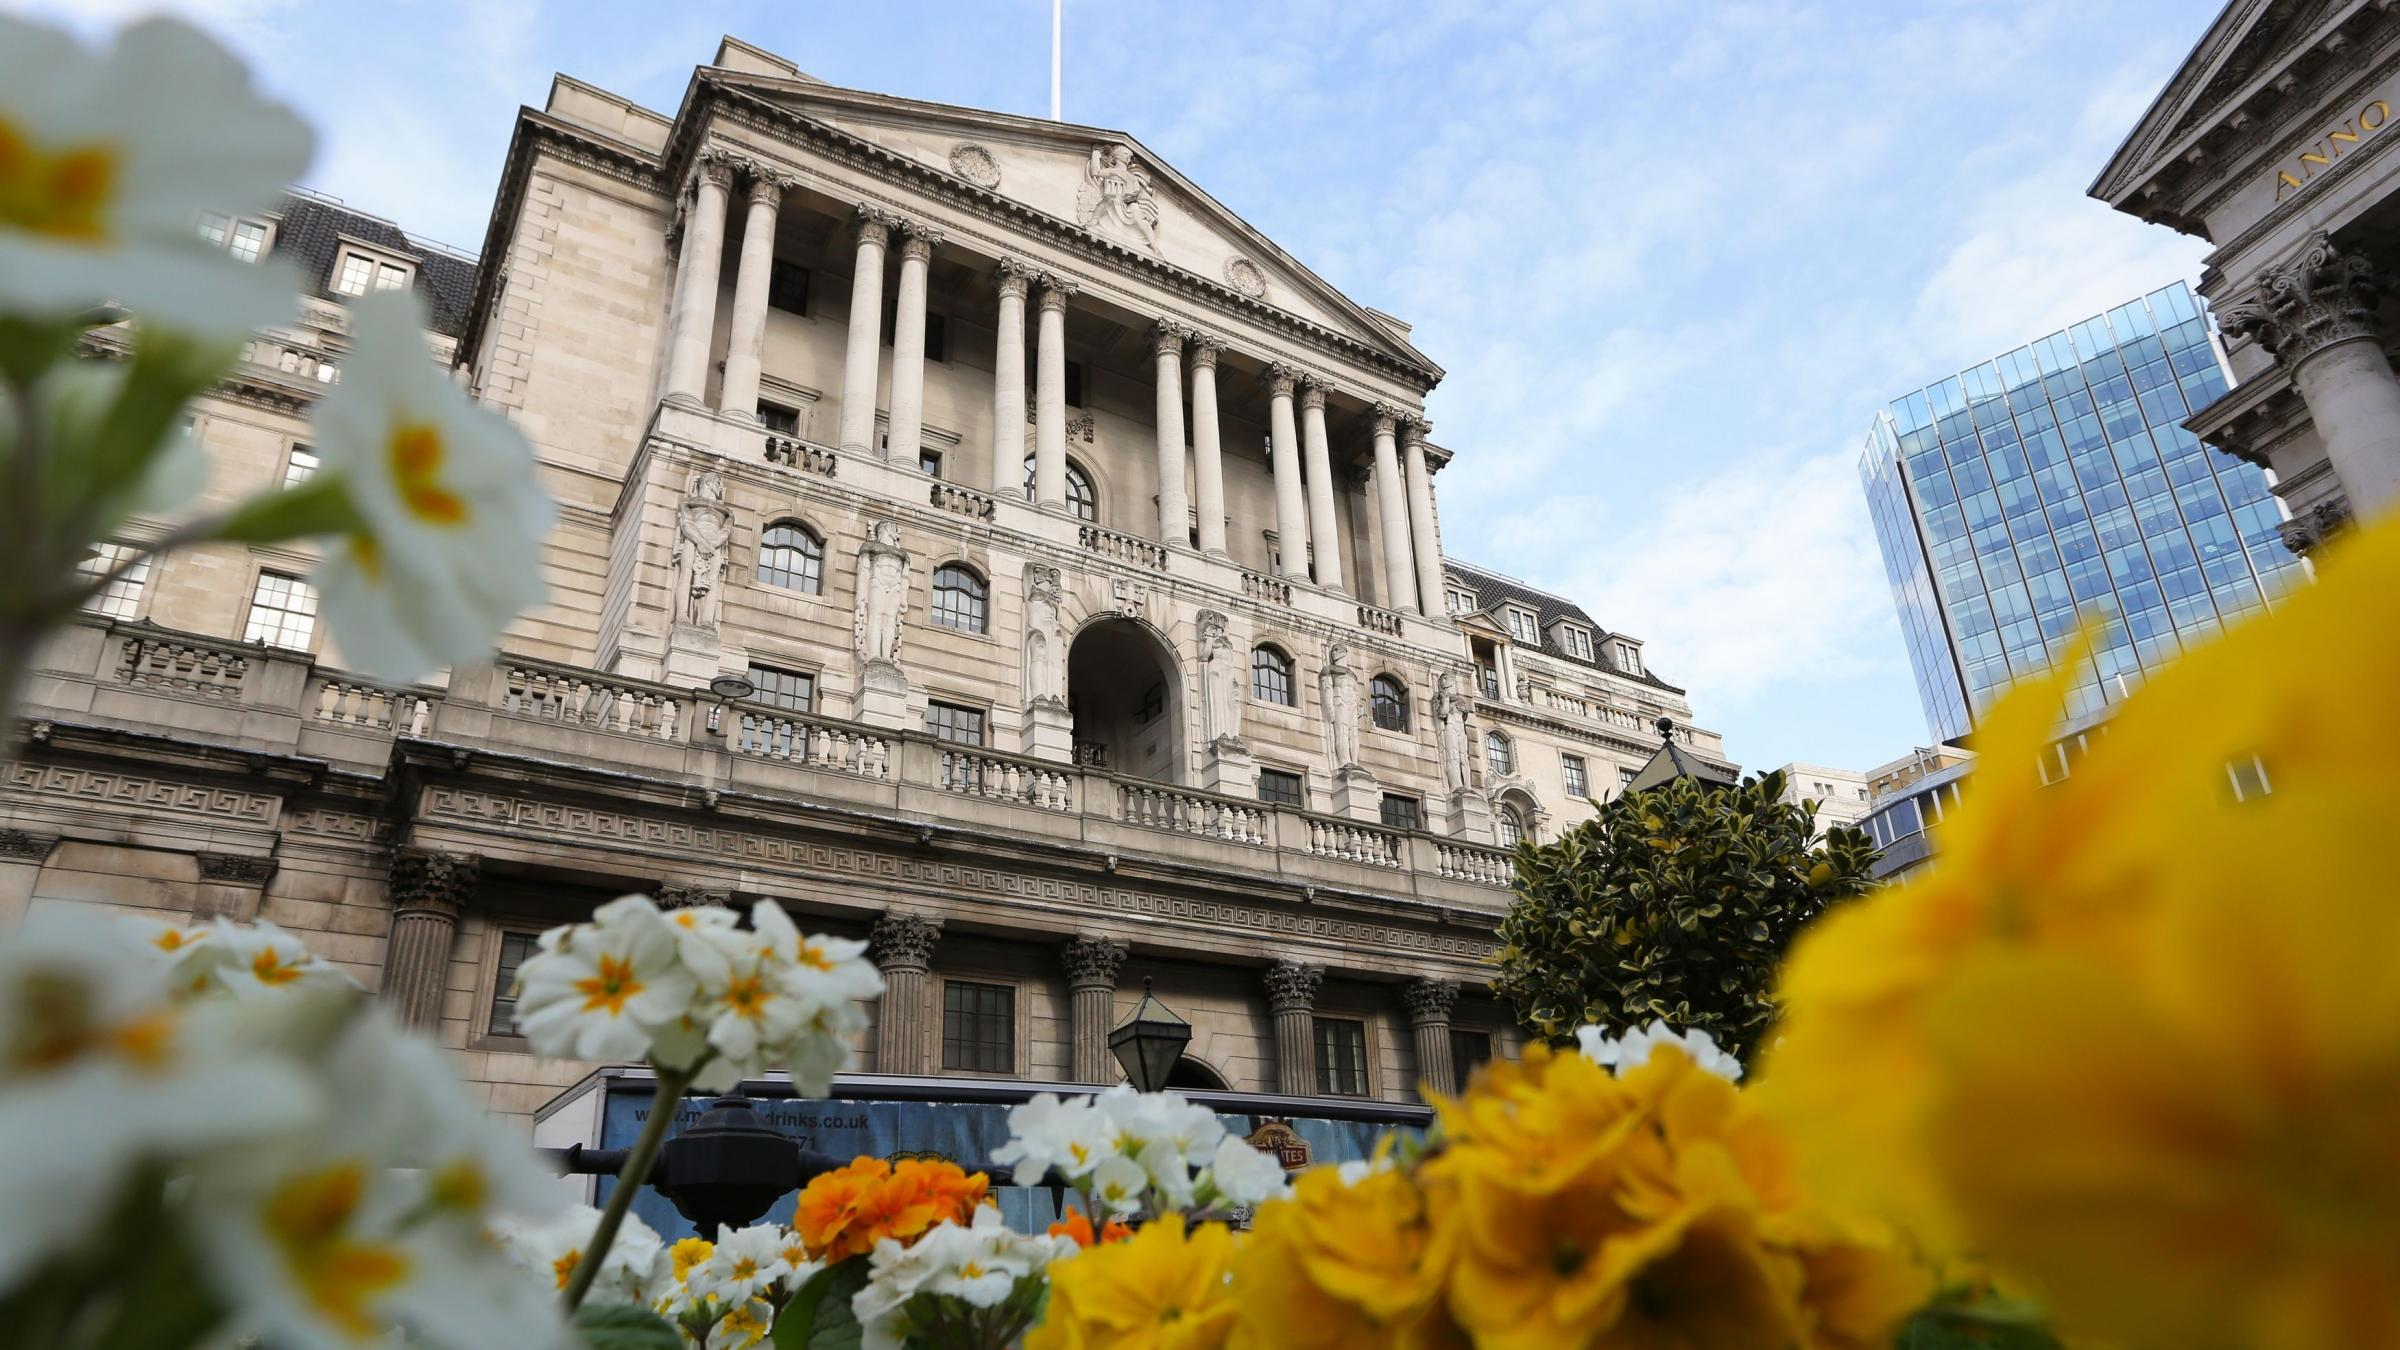 Interest rates stay at 0.25% but three at Bank urge rise amid inflation fears